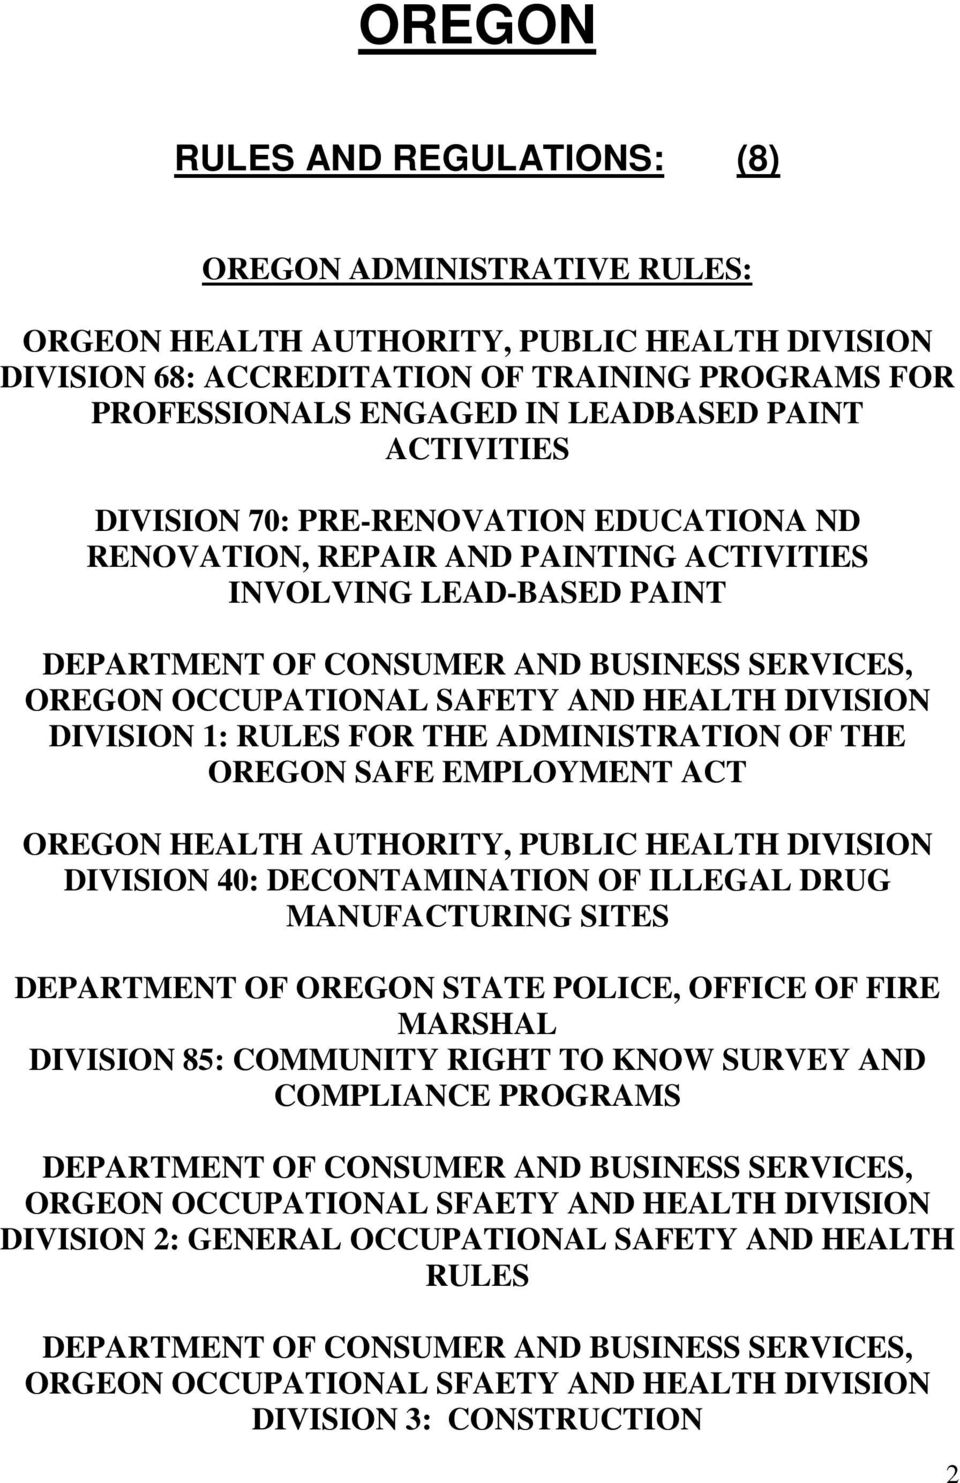 SAFETY AND HEALTH DIVISION DIVISION 1: RULES FOR THE ADMINISTRATION OF THE OREGON SAFE EMPLOYMENT ACT OREGON HEALTH AUTHORITY, PUBLIC HEALTH DIVISION DIVISION 40: DECONTAMINATION OF ILLEGAL DRUG